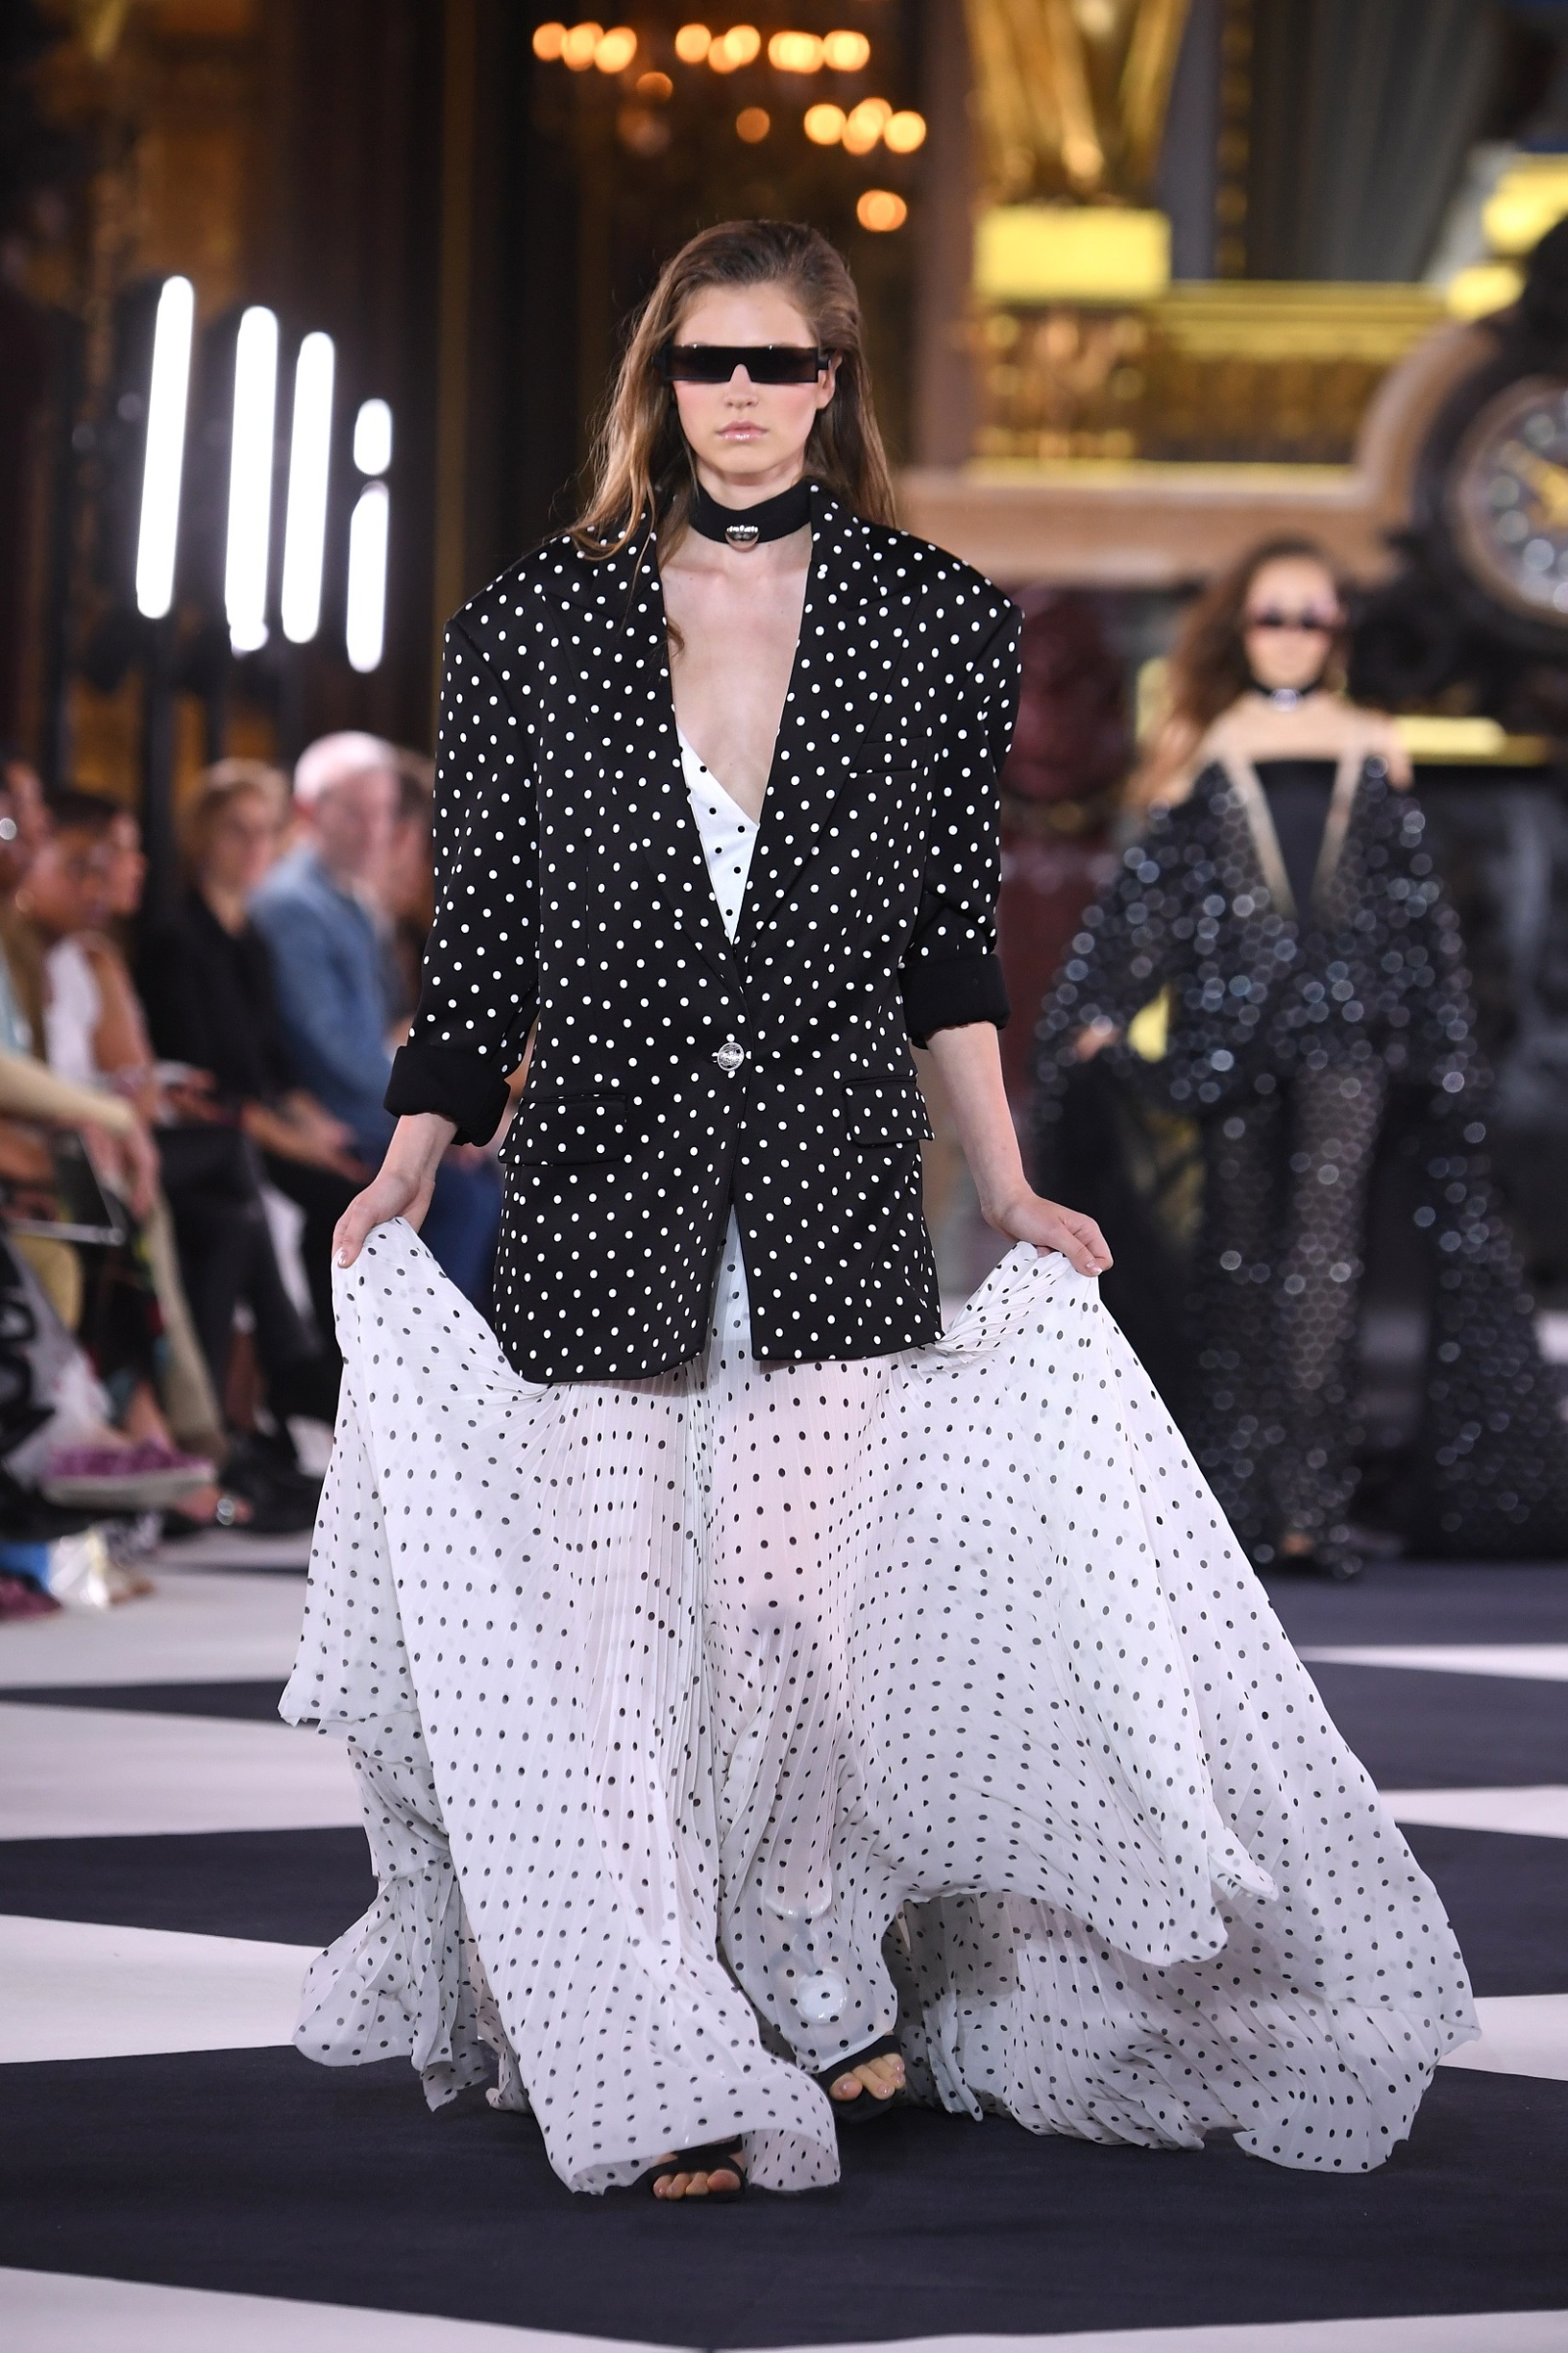 PARIS, FRANCE - SEPTEMBER 27: A model walks the runway during the Balmain Womenswear Spring/Summer 2020 show as part of Paris Fashion Week on September 27, 2019 in Paris, France. (Photo by Pascal Le Segretain/Getty Images)